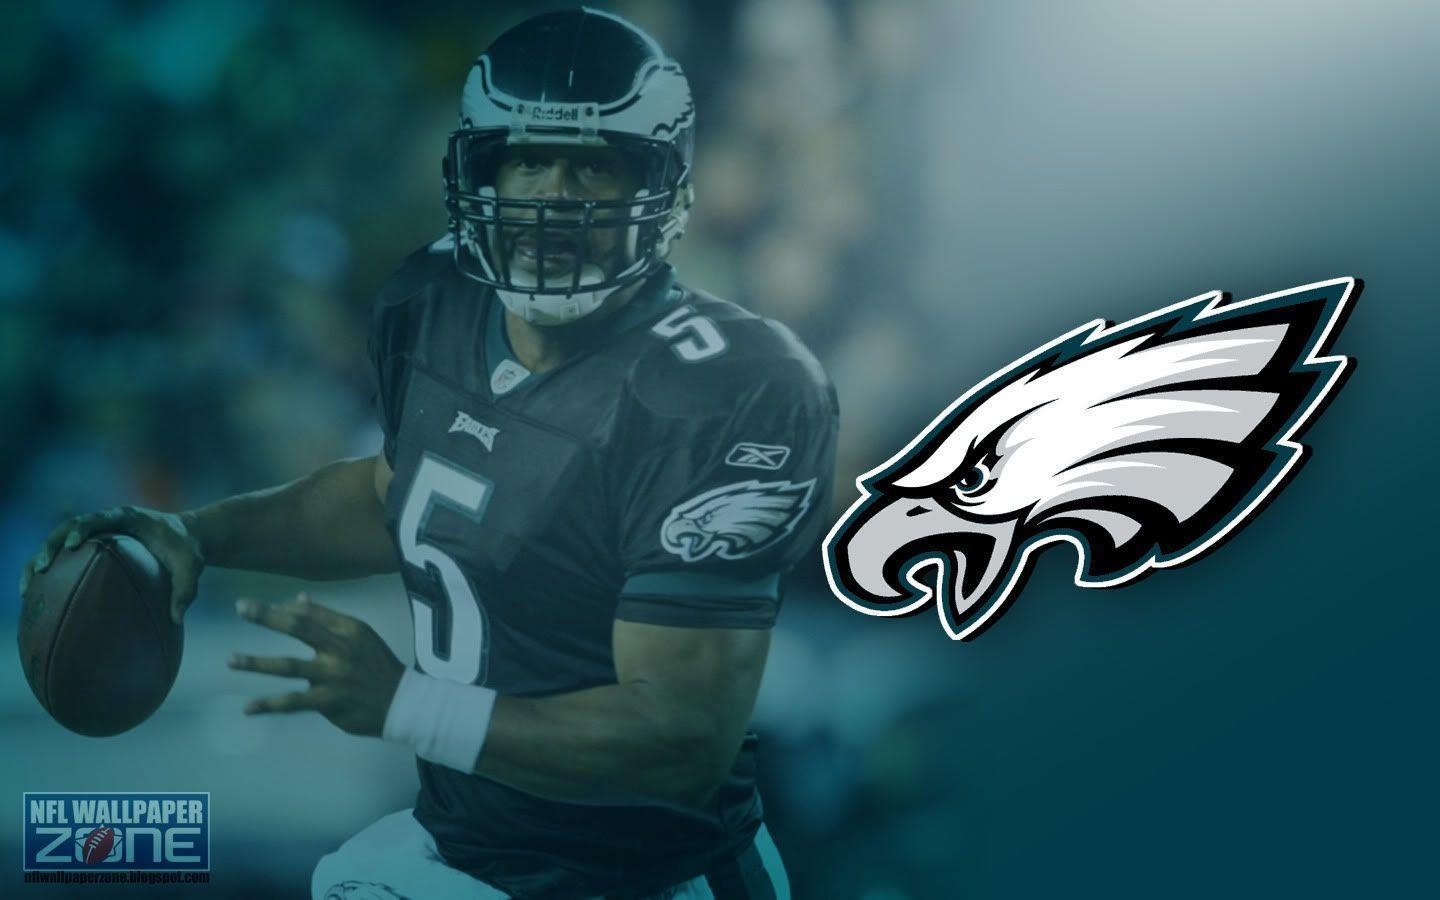 Philadelphia Eagles Wallpaper Photo by NFLWallpaperZone | Photobucket